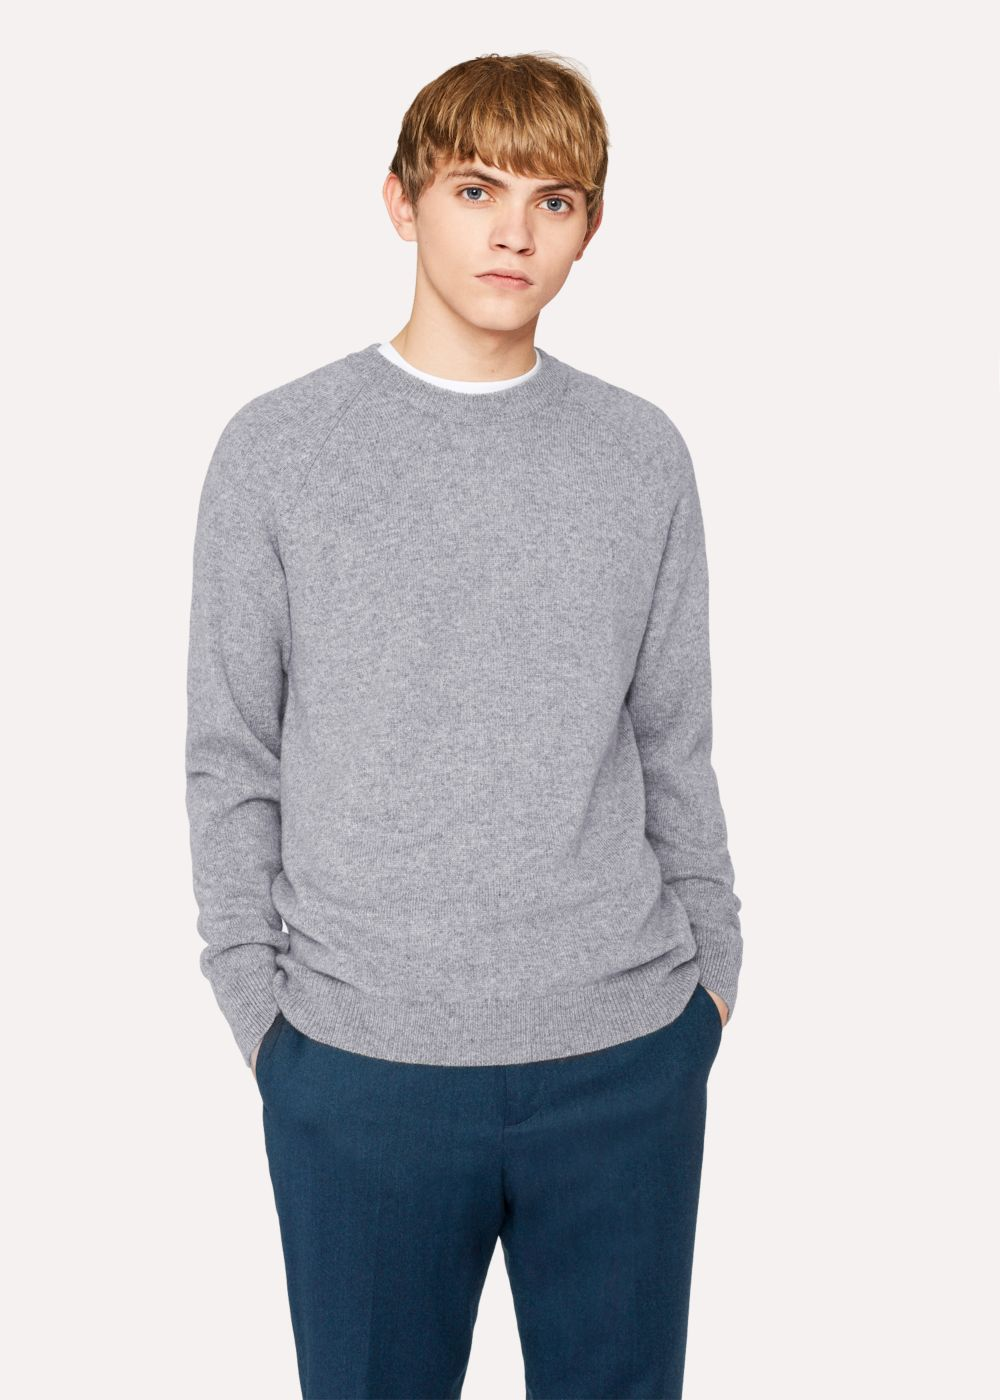 Paul Smith Men's Light Grey Merino Wool Raglan Sleeve Sweater